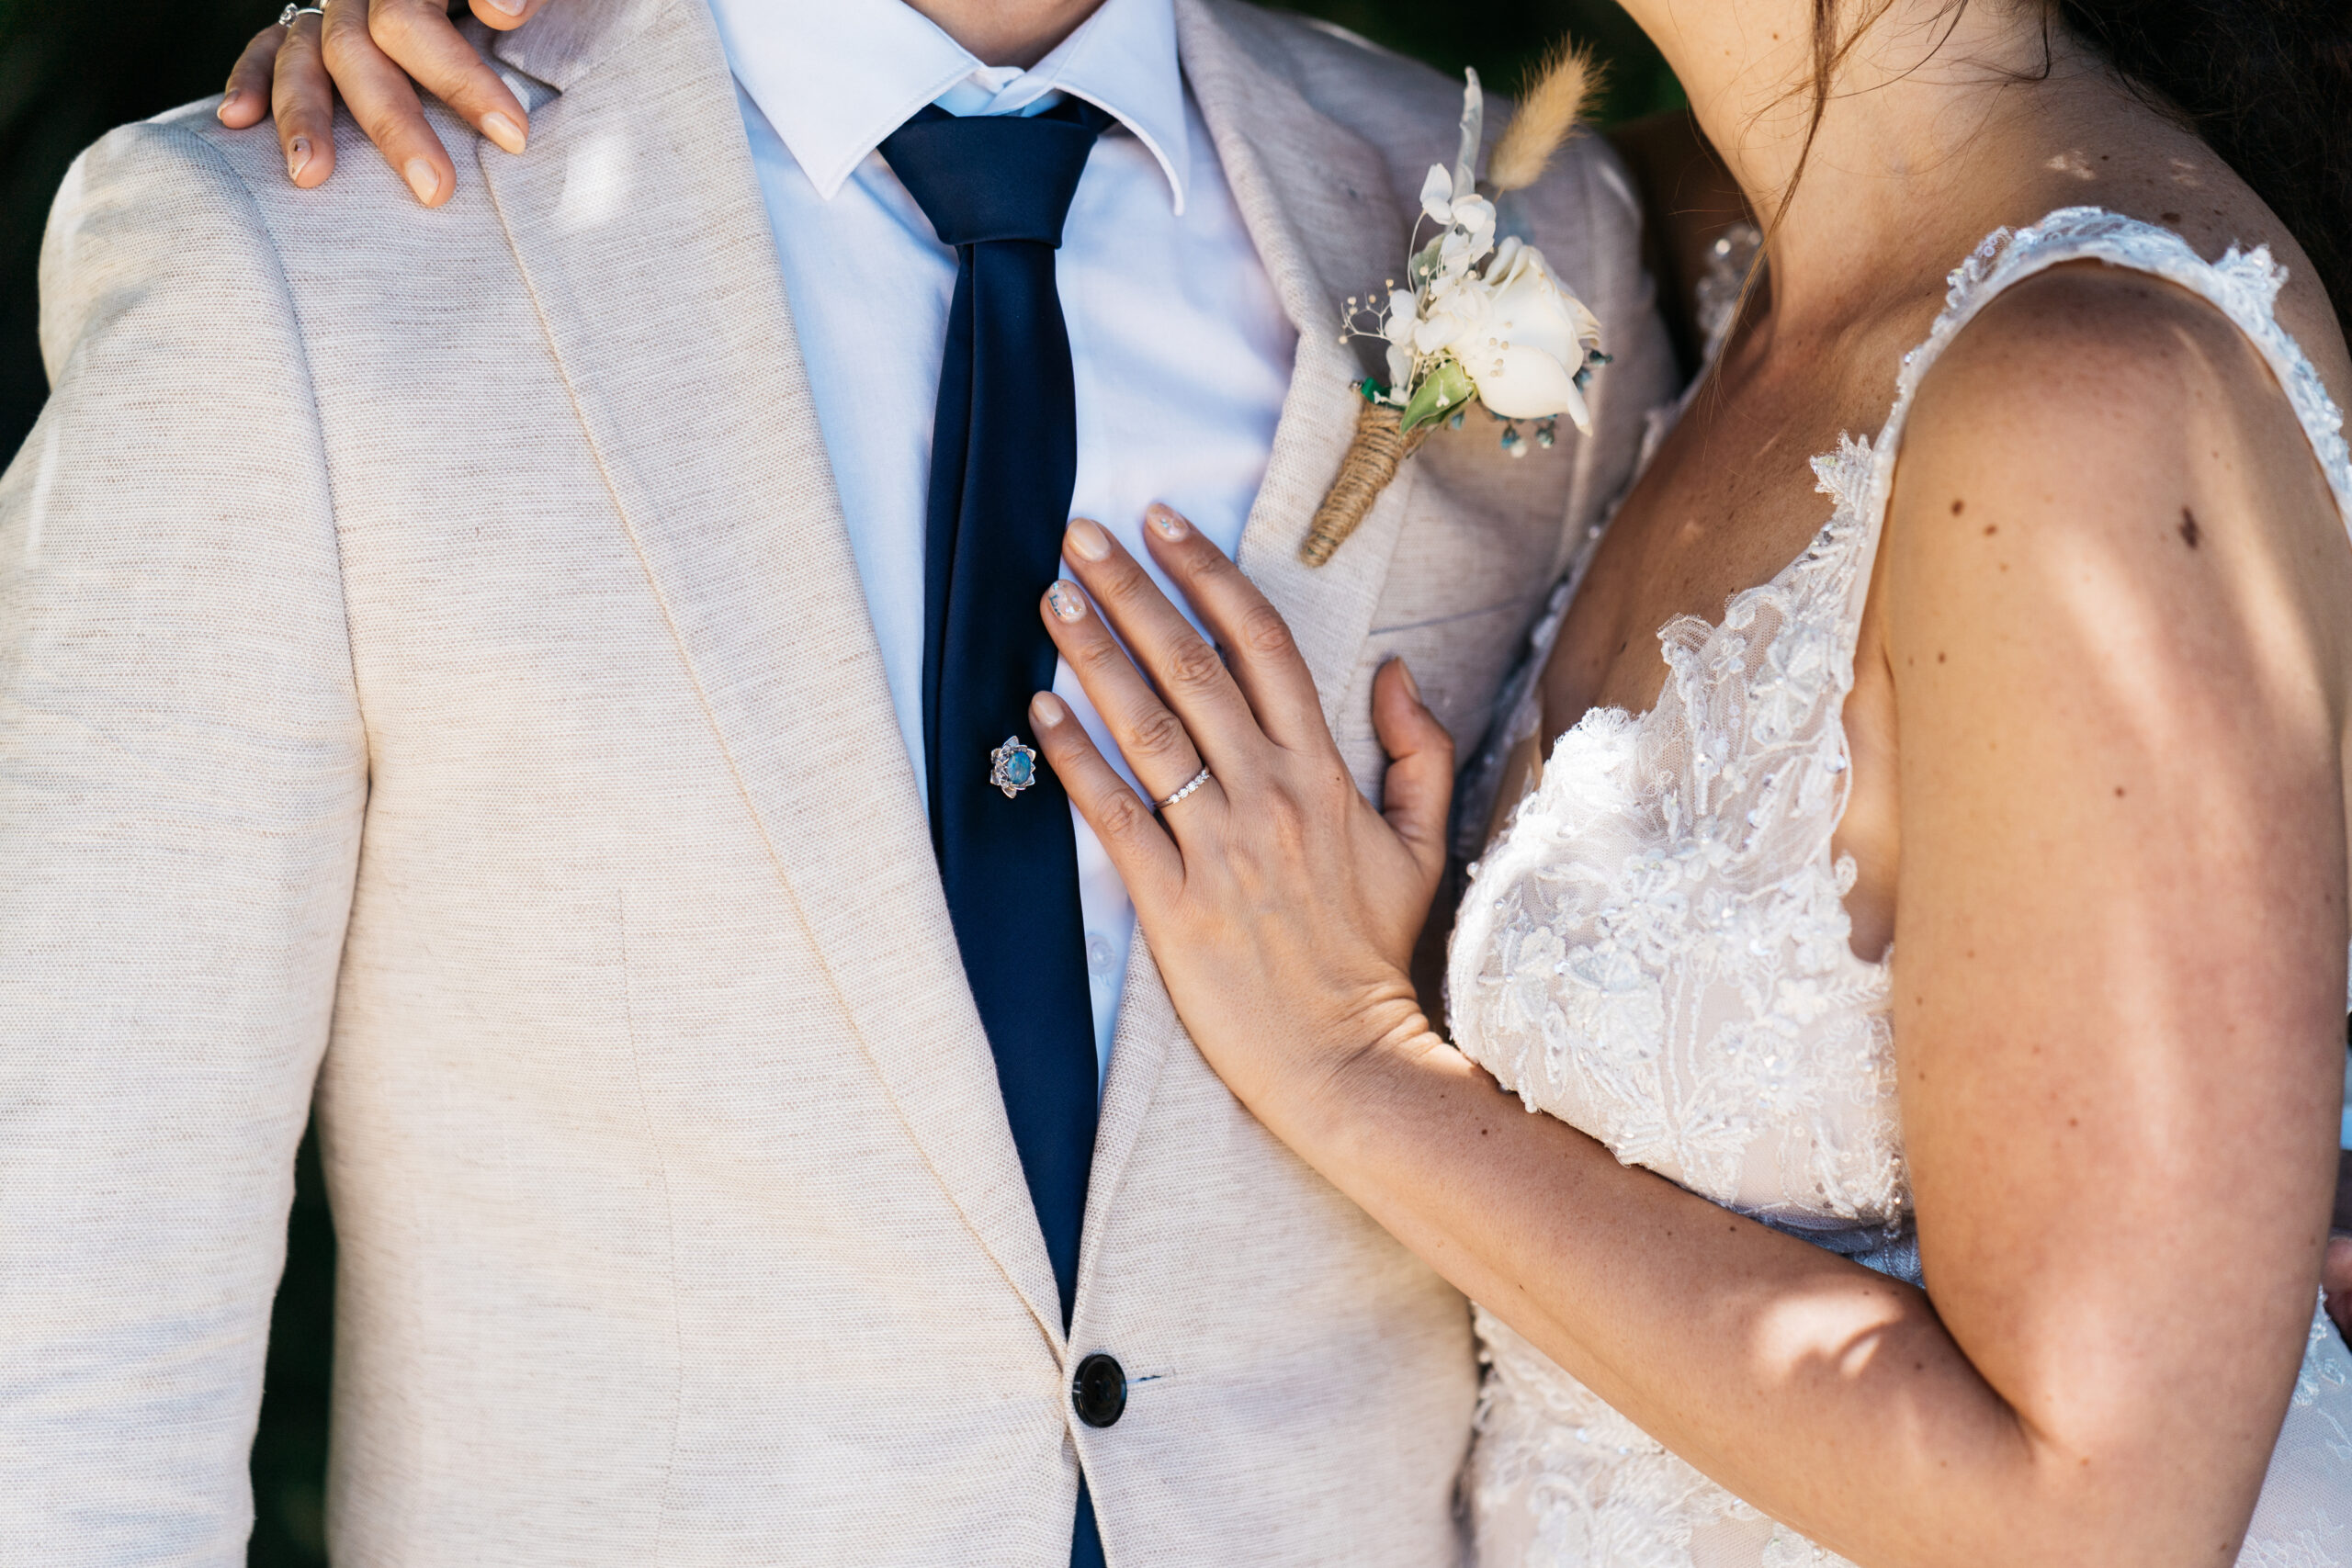 wedding gown and suit details | Tumbleweed Events